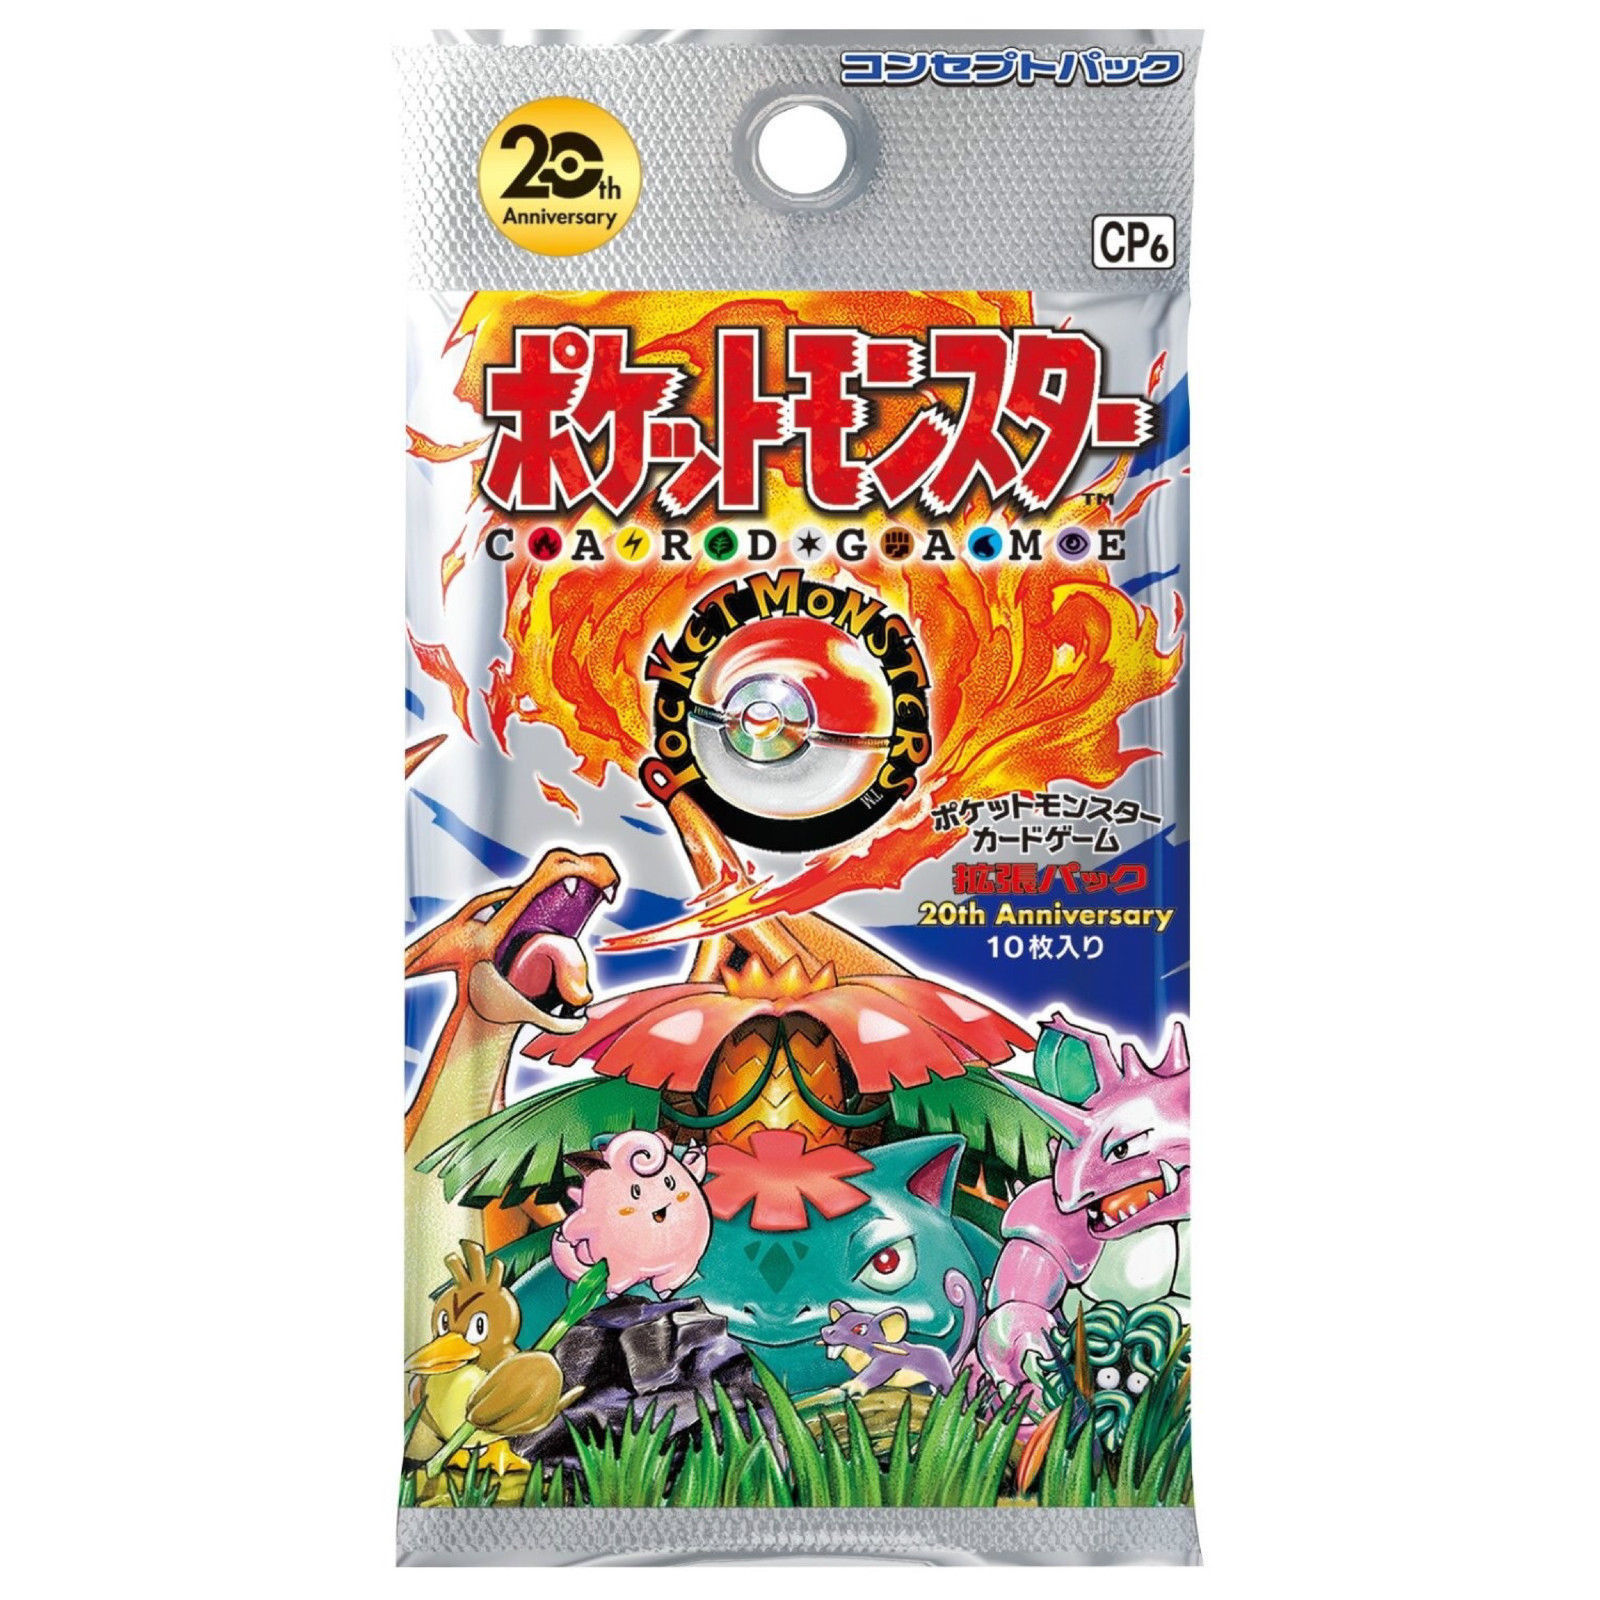 Japanese CP6 XY Evolutions 20th Anniversary Pokemon Booster Pack